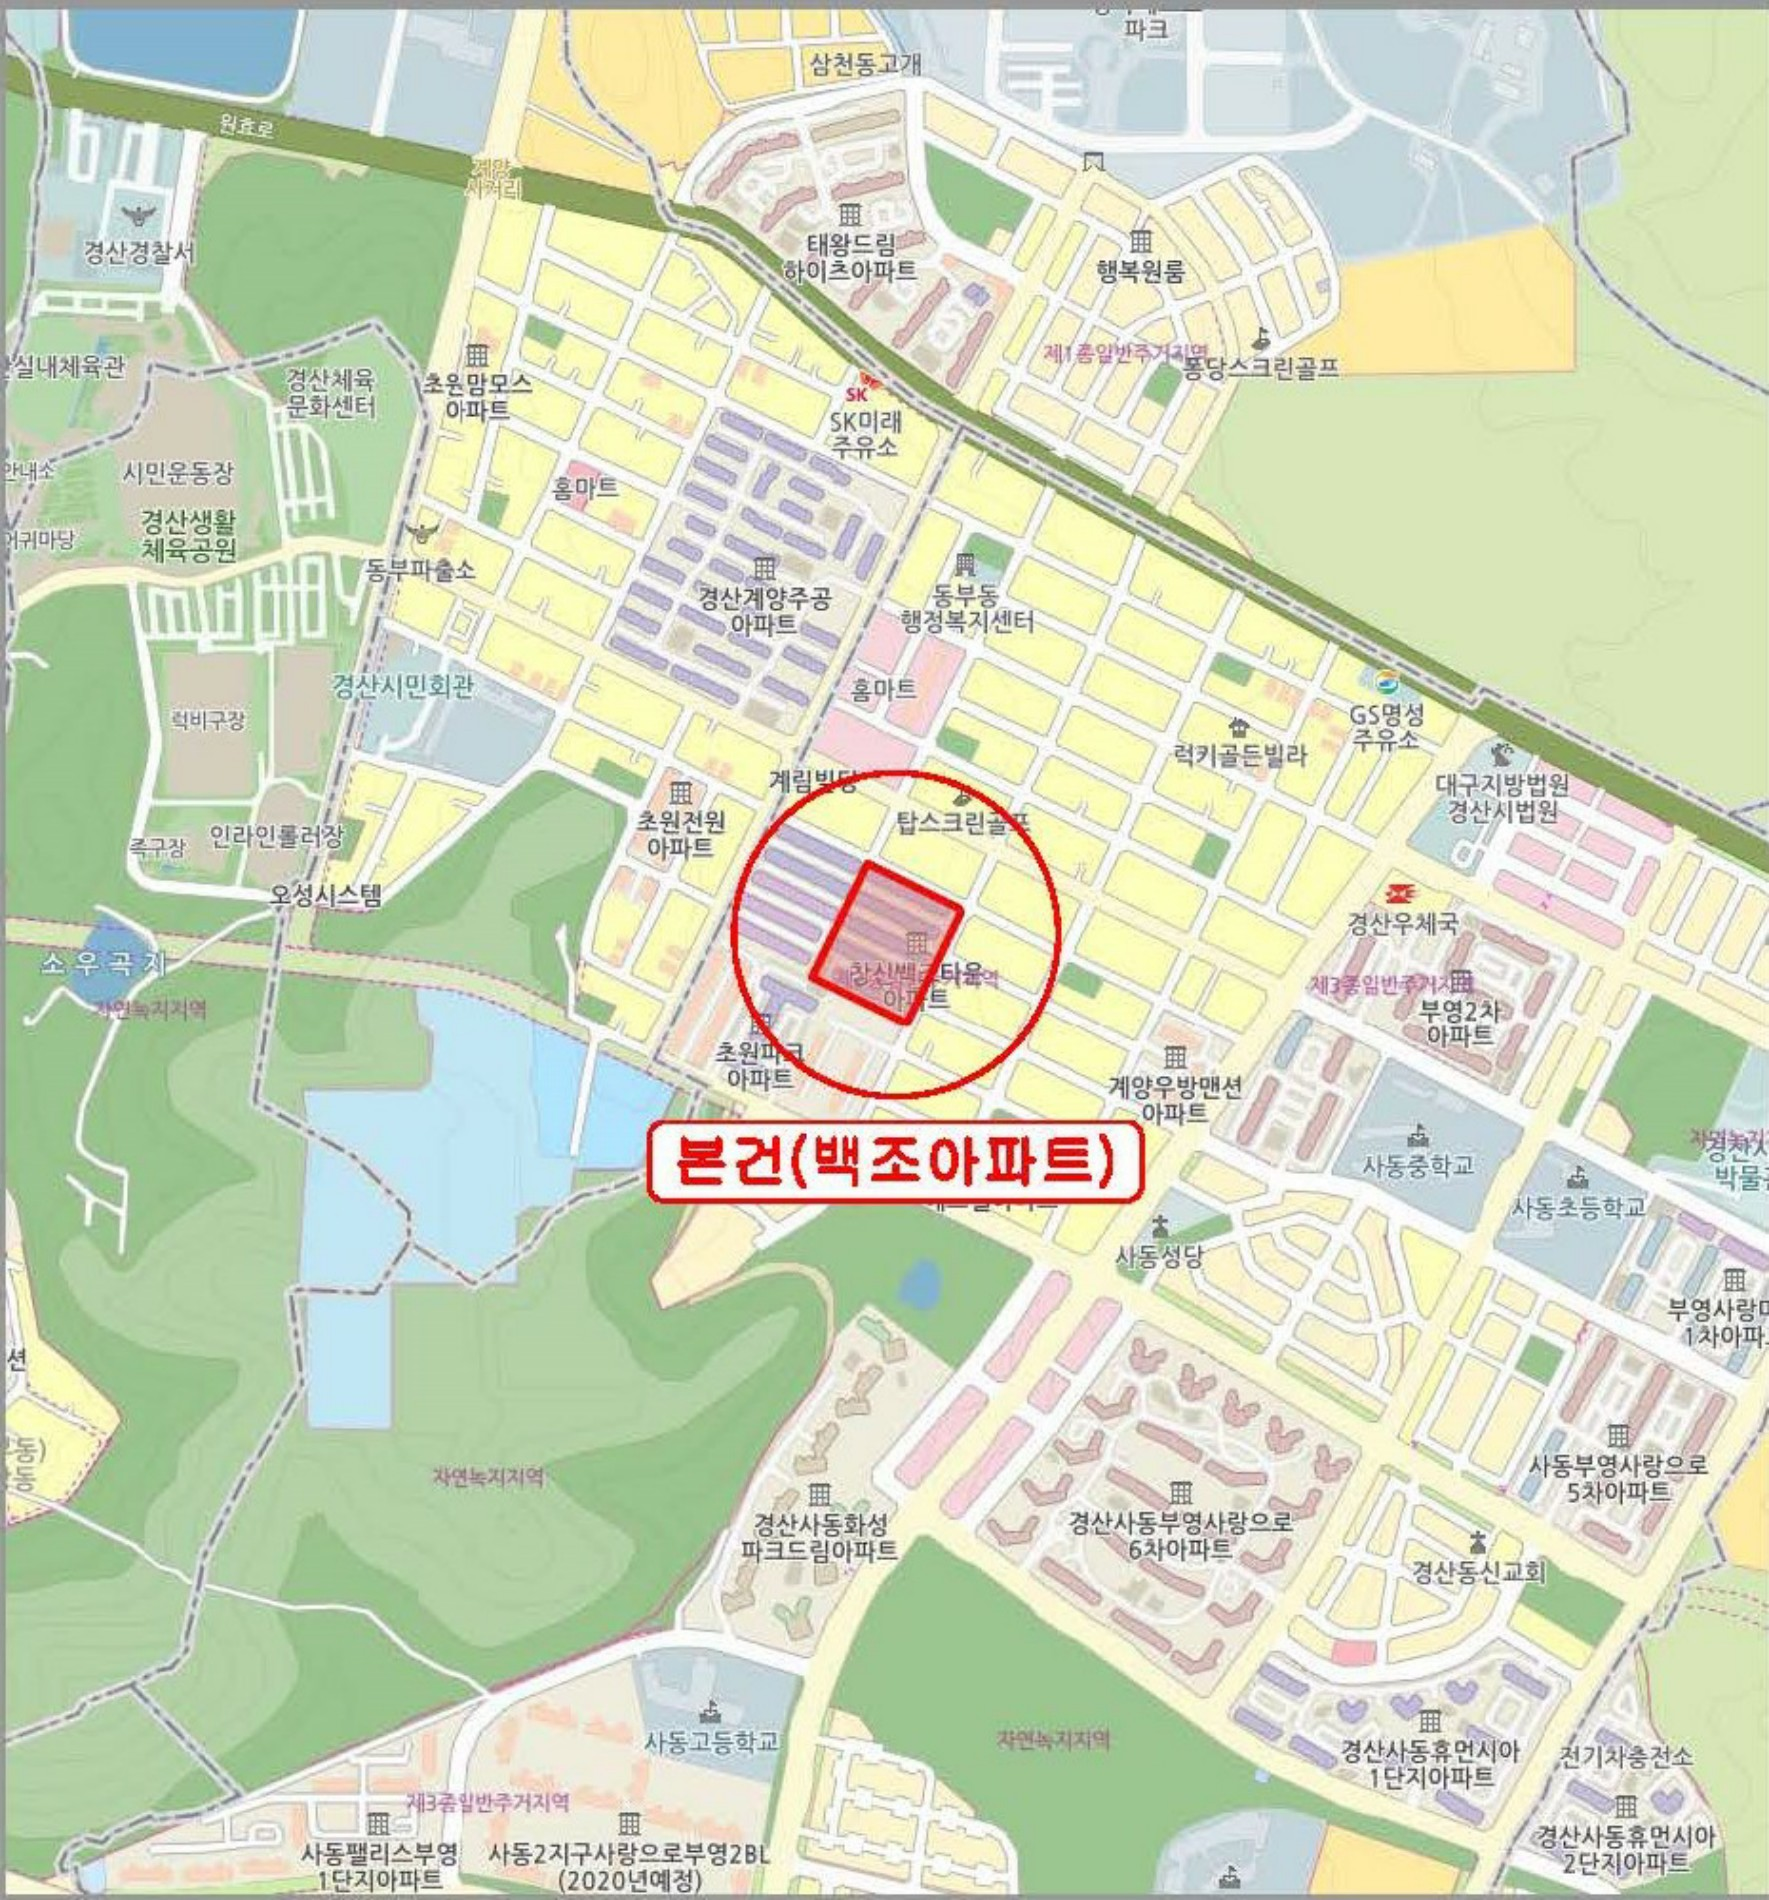 https://www.onbid.co.kr/op/common/downloadFile.do?atchFilePtcsNo=11734054&atchSeq=5